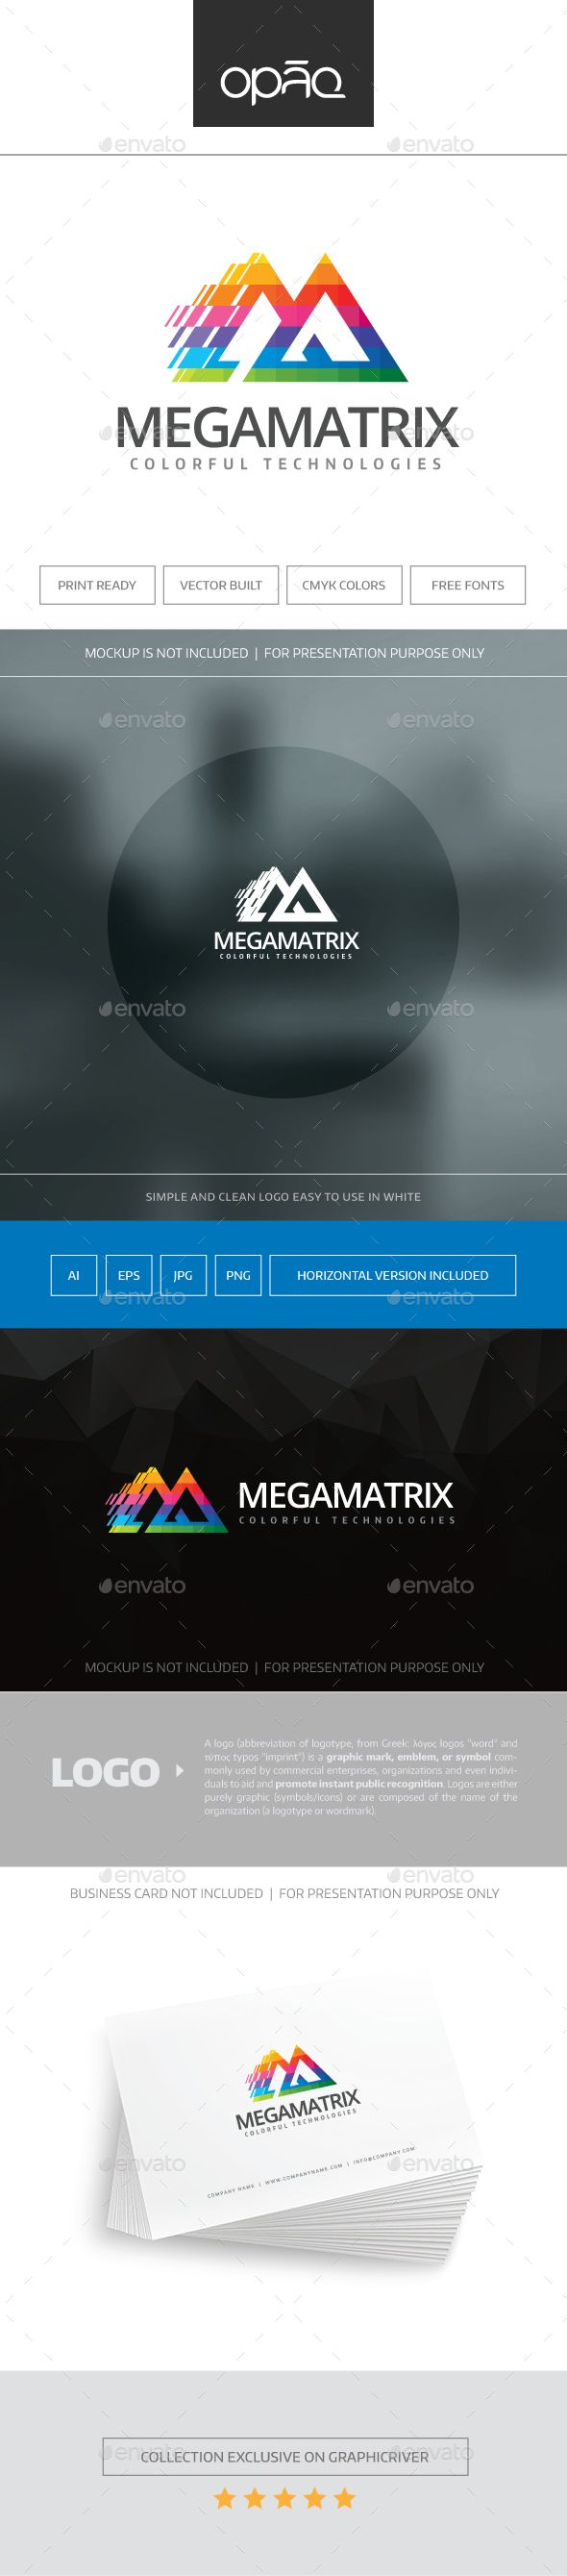 Mega Matrix Logo — Transparent PNG #movement #media • Available here → https://graphicriver.net/item/mega-matrix-logo/16472746?ref=pxcr